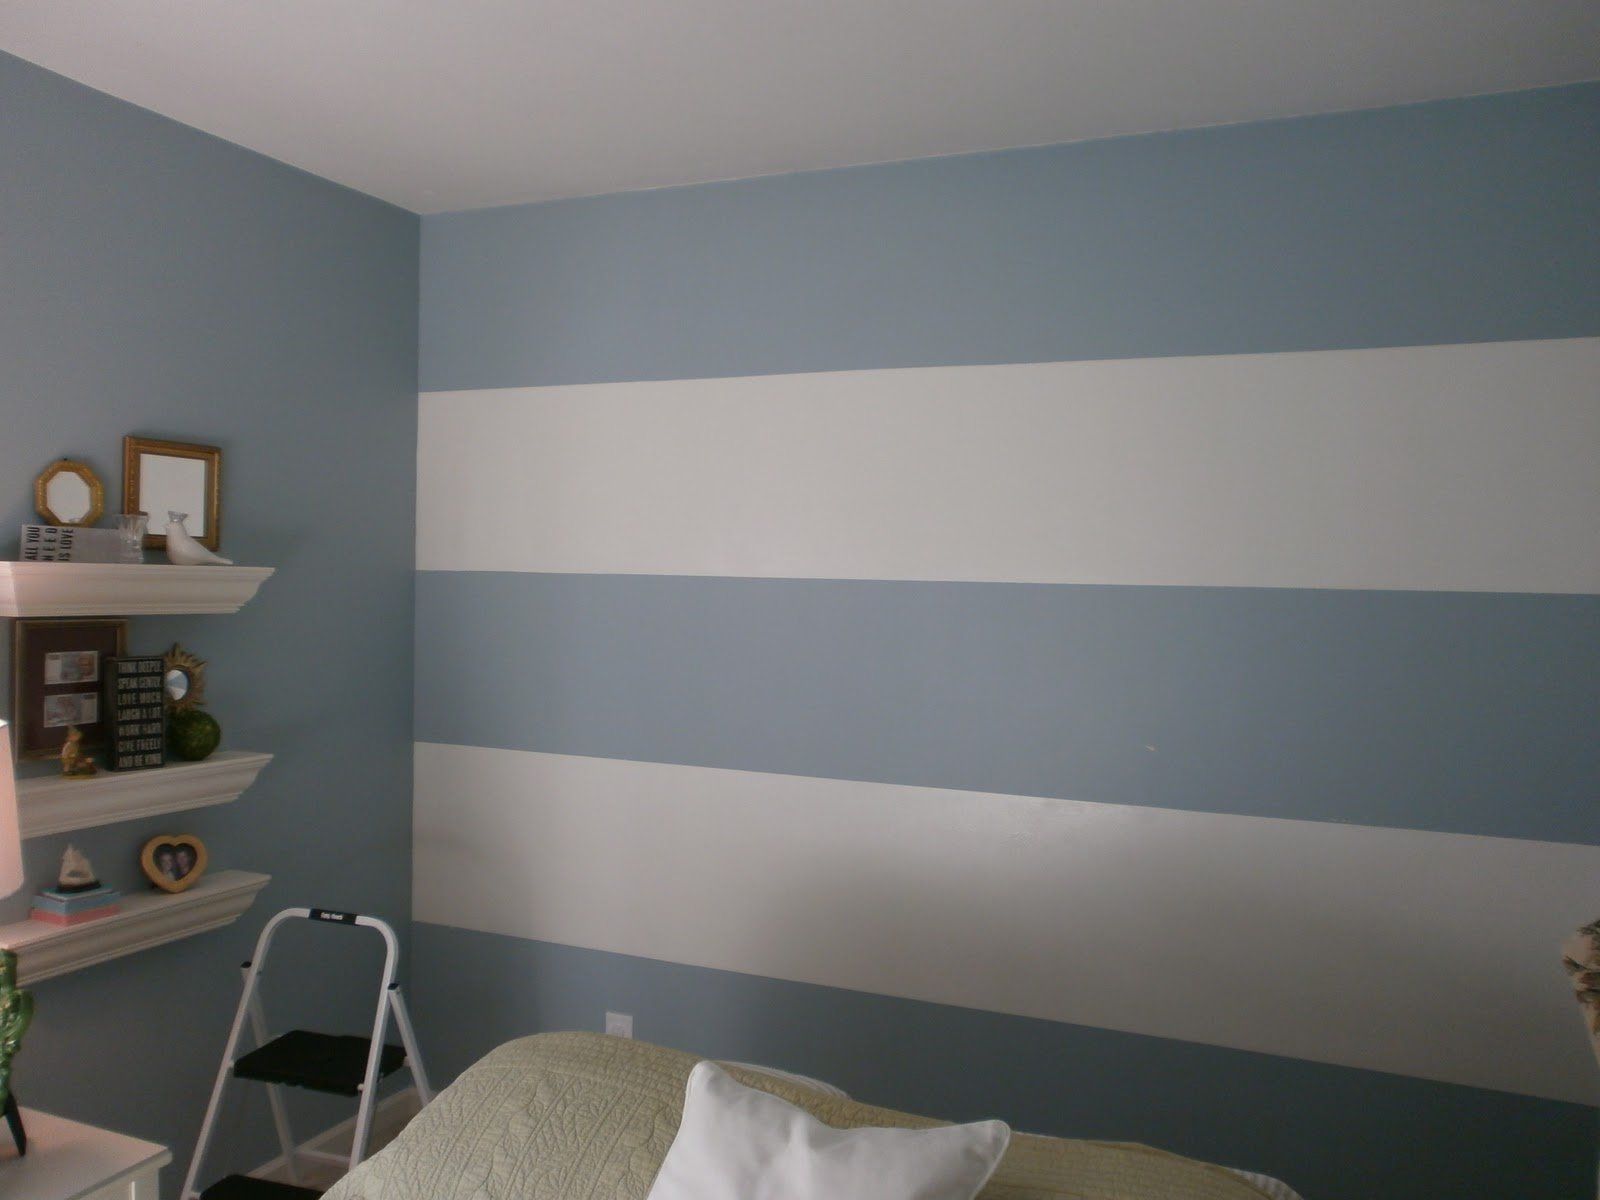 How To Paint A Room With Horizontal Stripes